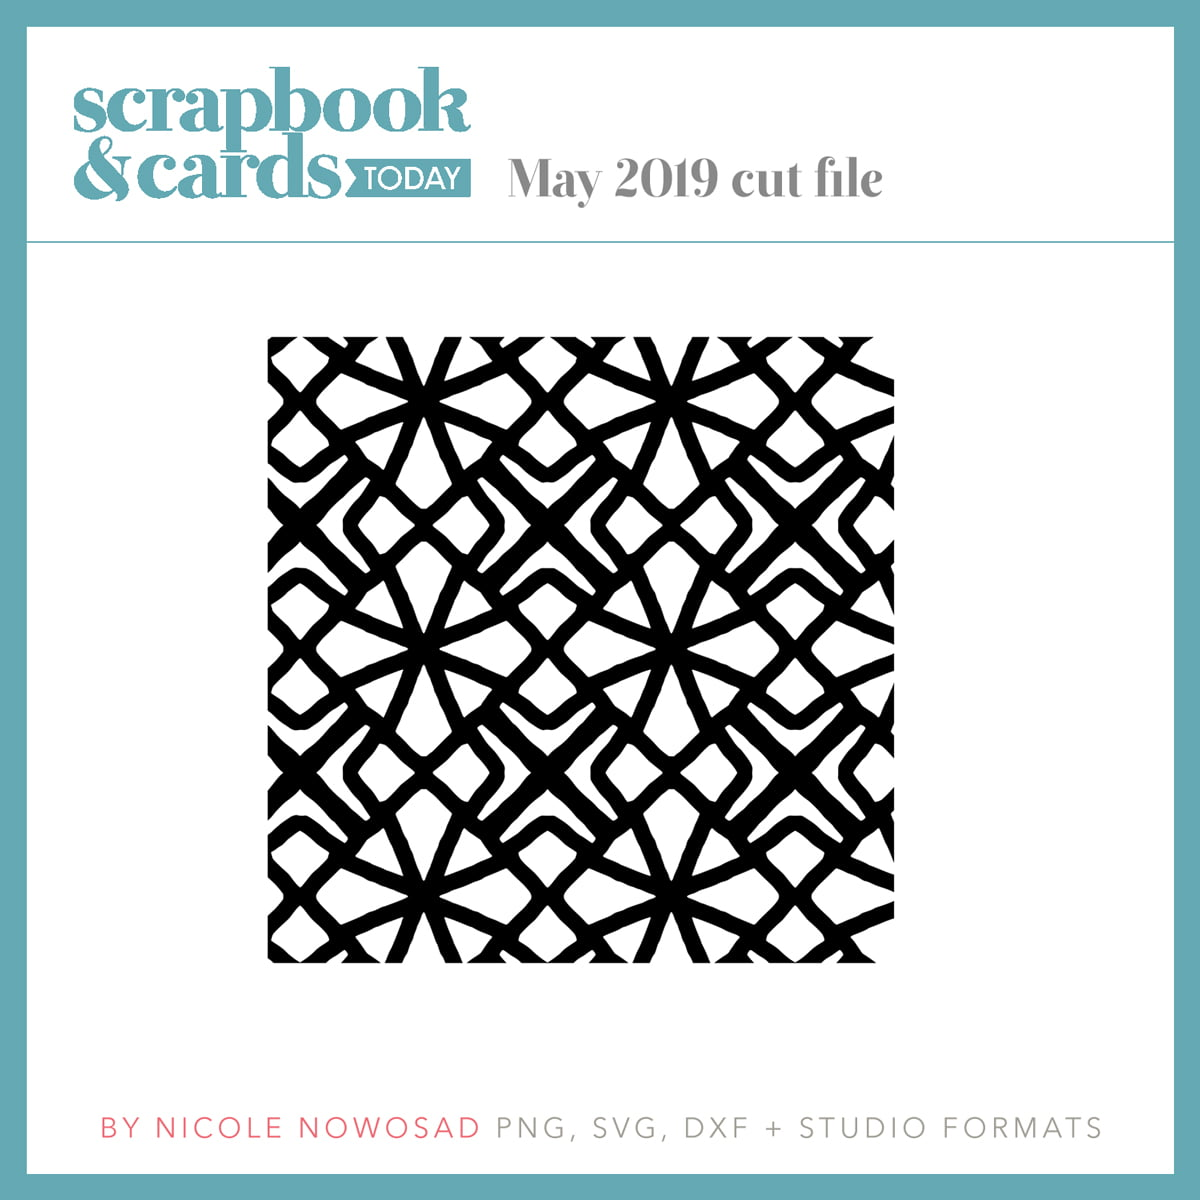 May 2019 free cut file from Scrapbook & Cards Today